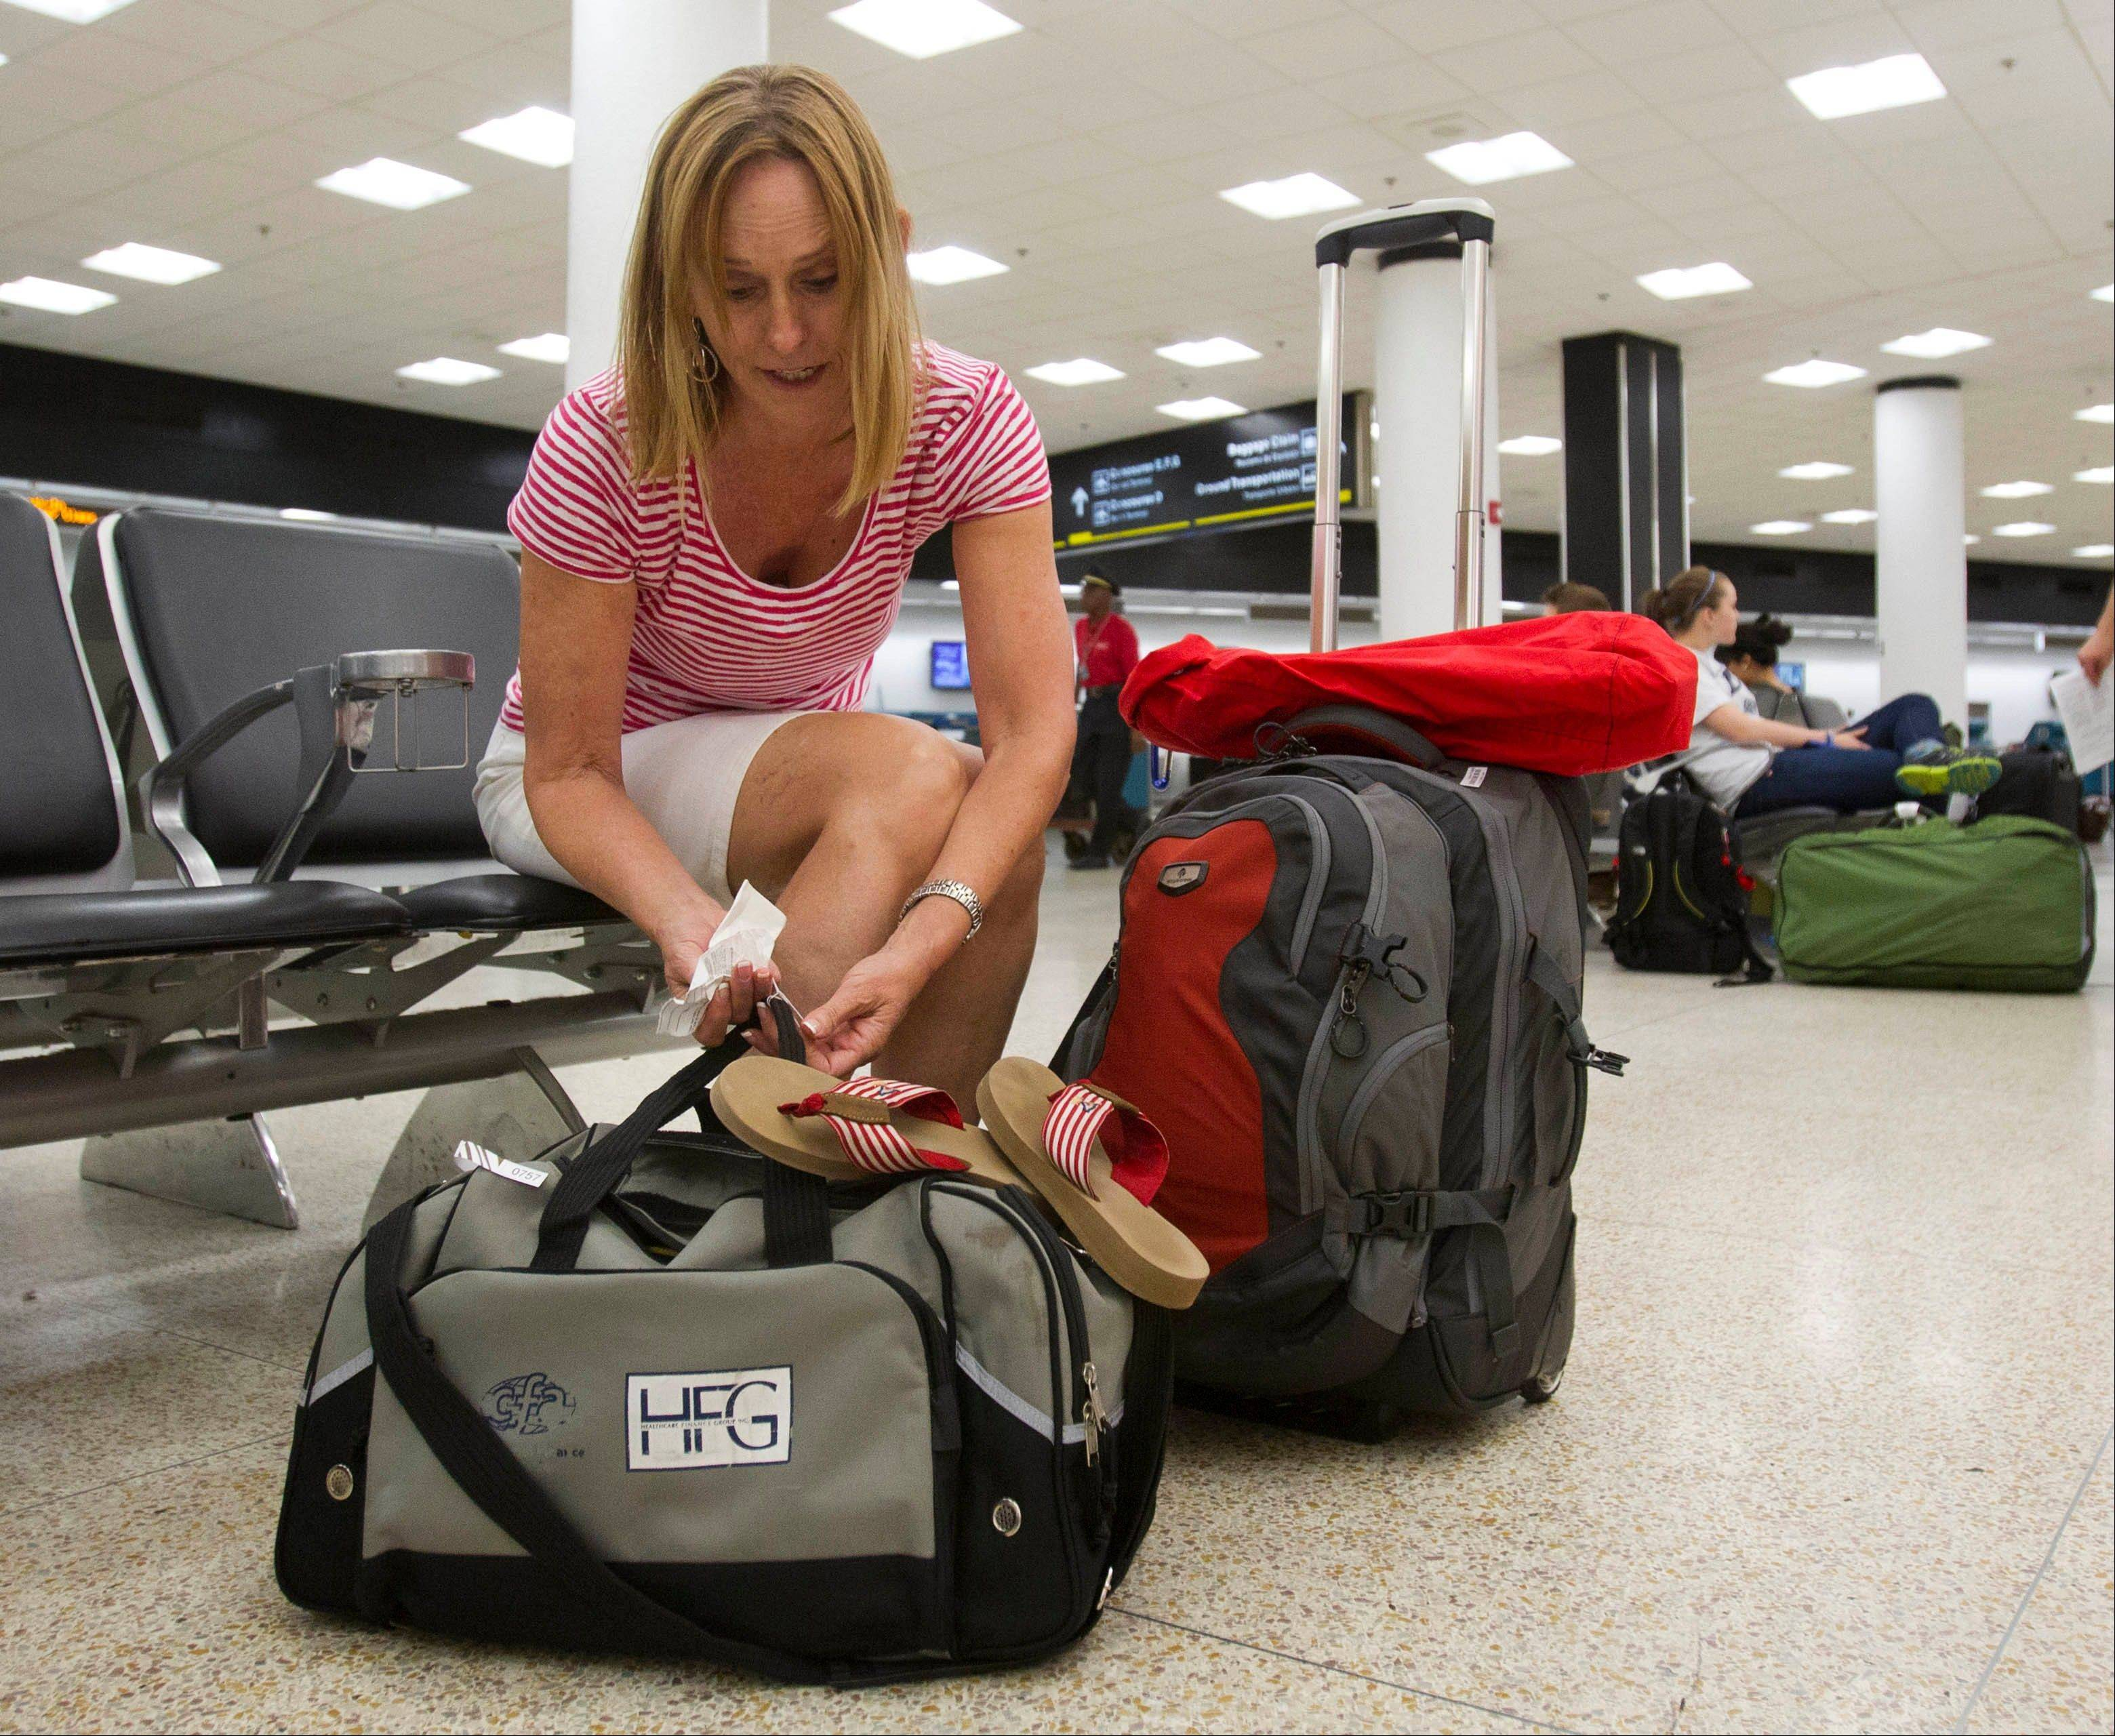 Pat Burns, of San Diego, prepares her luggage for check-in at Miami International Airport in Miami last Friday. Burns, after an overnight stay in Miami, is traveling to the Galapagos Islands in Ecuador for the Fourth of July holiday. For the first time in five years Independence Day falls on a Wednesday, leaving travelers unsure when to celebrate and worrying those who make a living off tourists.